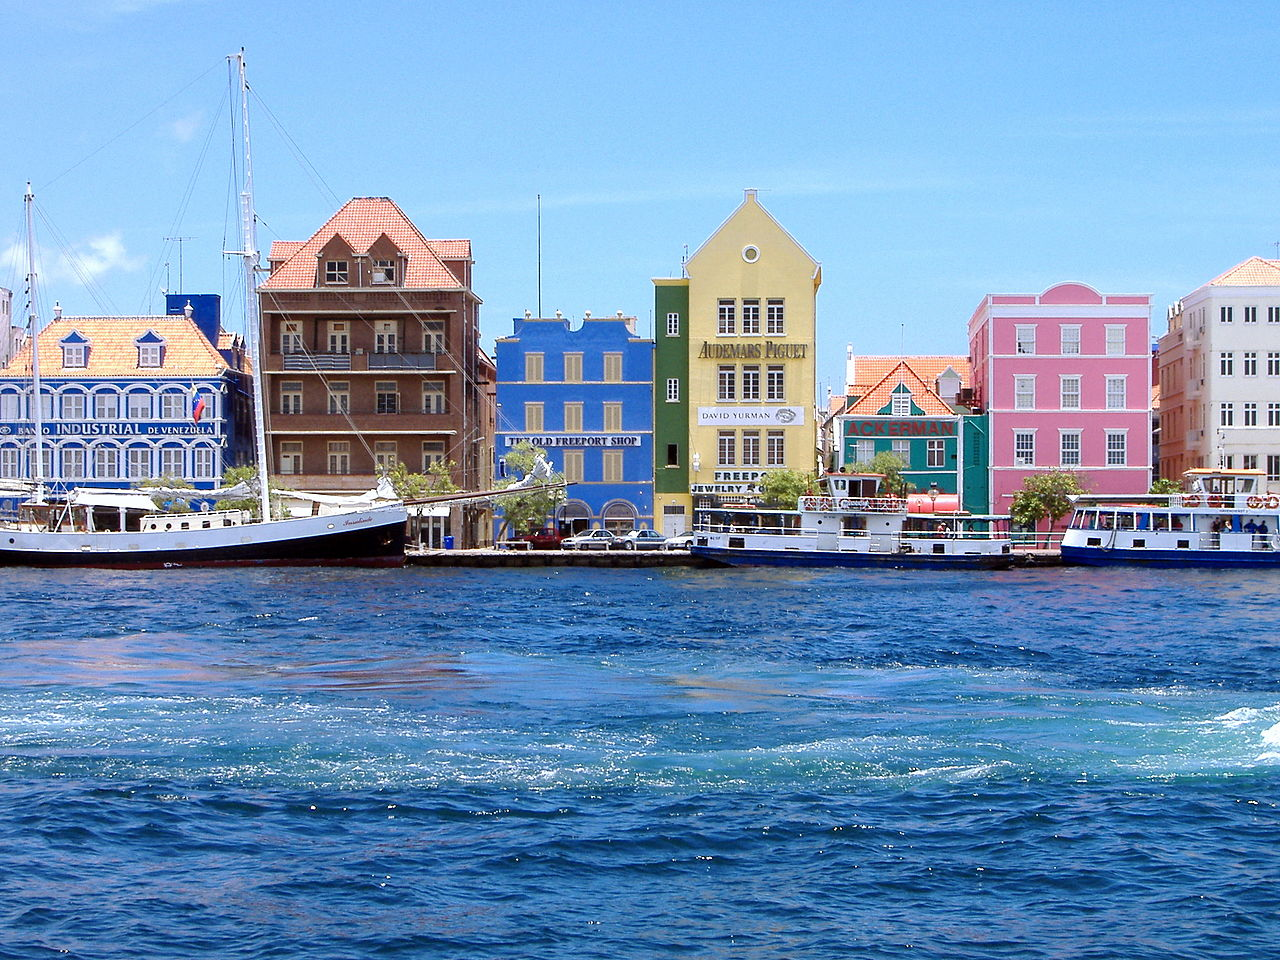 Willemstads Harbour Curacao By Mtmelendez at the English language Wikipedia